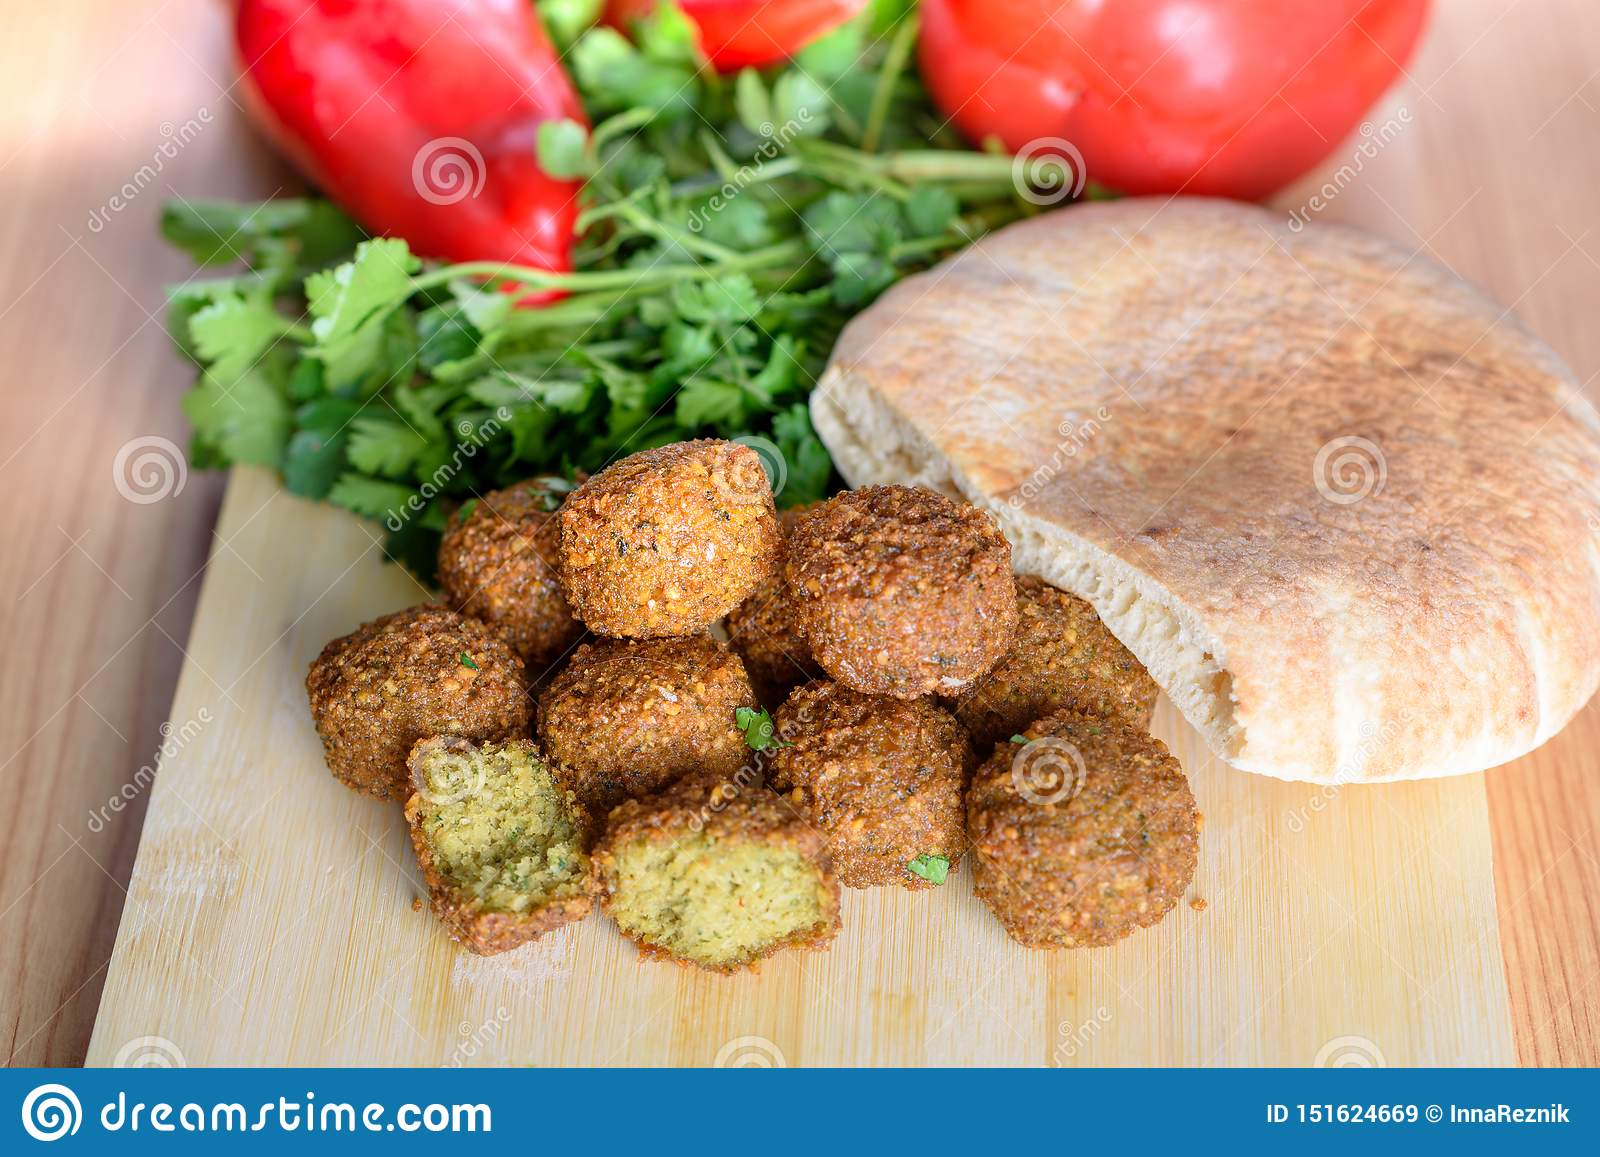 Falafel balls,sweet red pepper ,pita-arabian bread and green fresh parsley on wood rustic background.